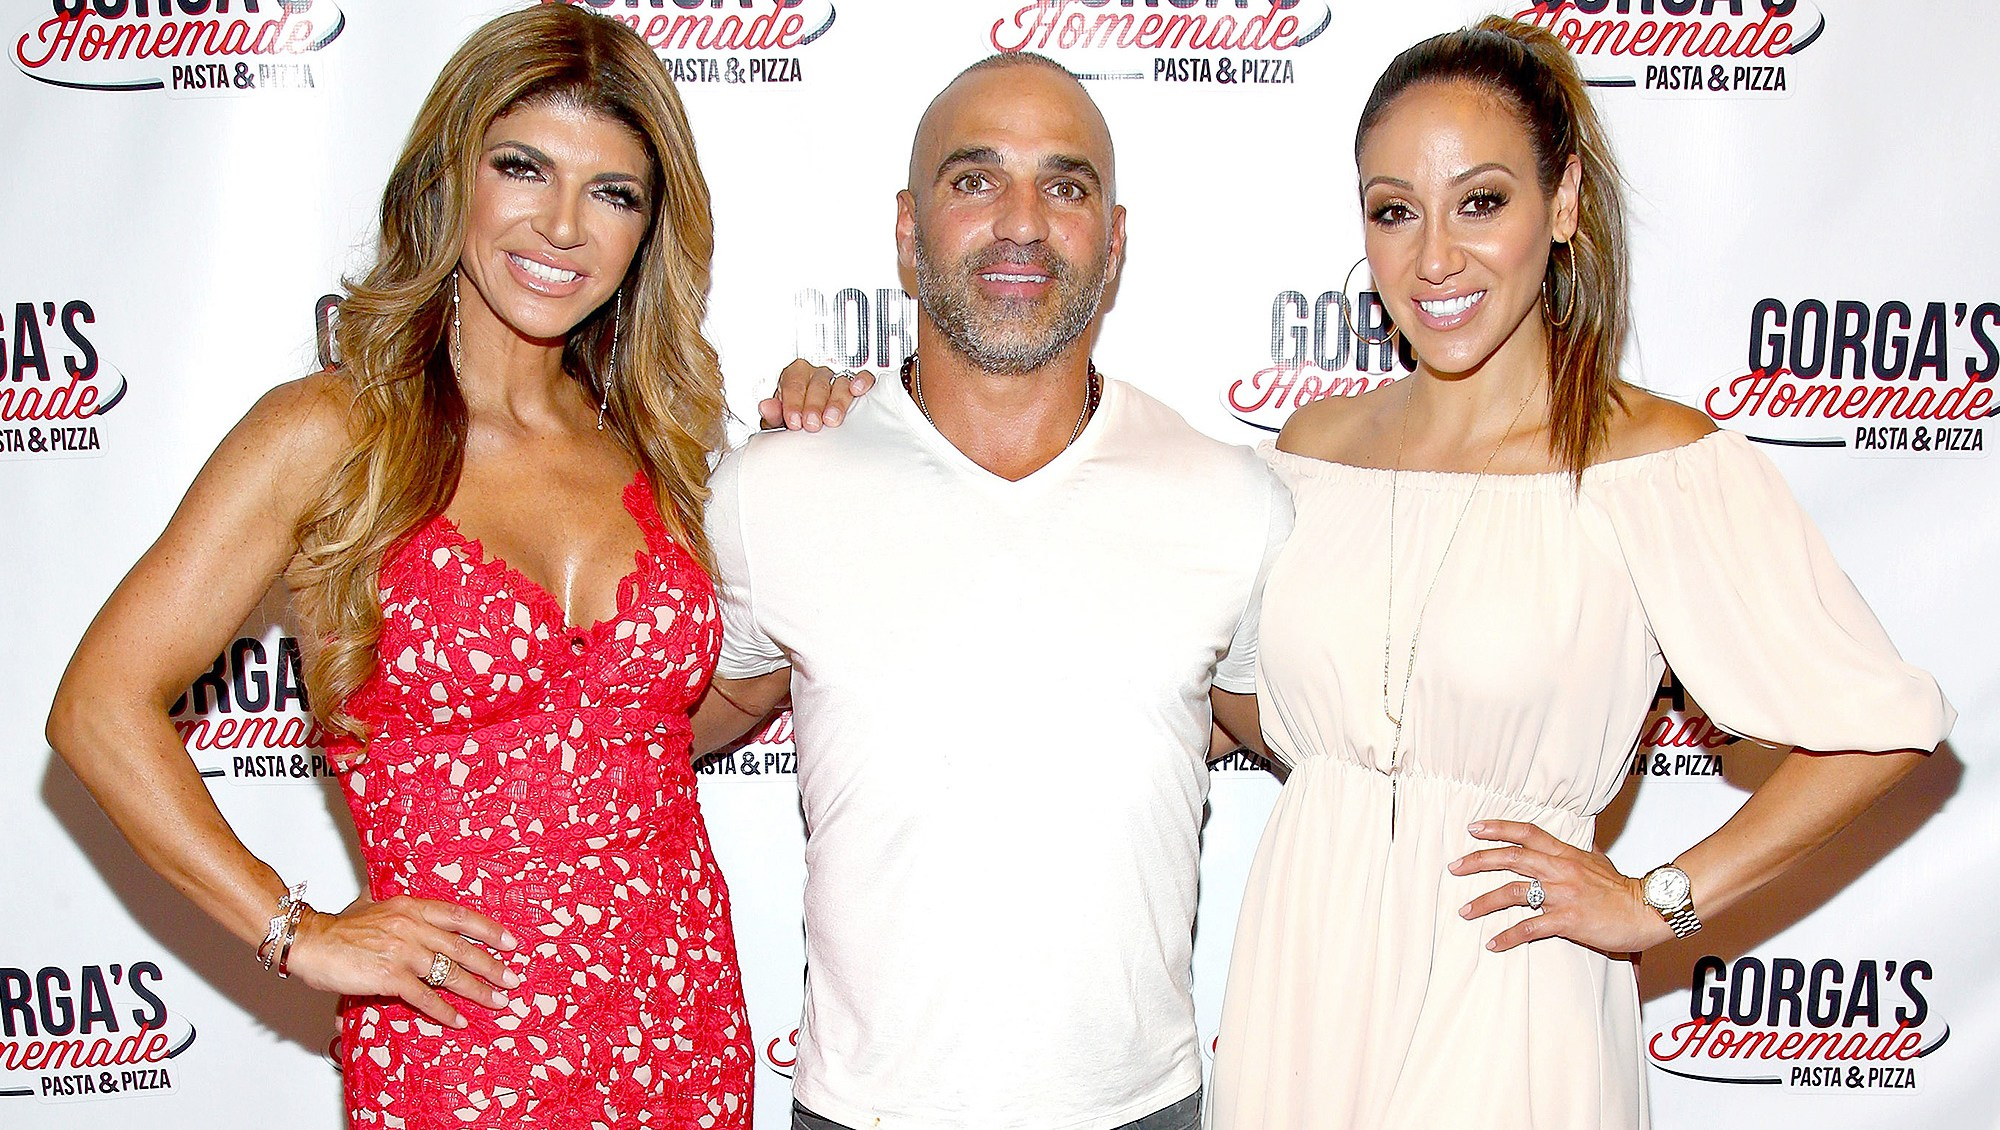 Teresa Giudice, Joe Gorga, Melissa Gorga, Homemade Pasta & Pizza, Restaurant, Closed